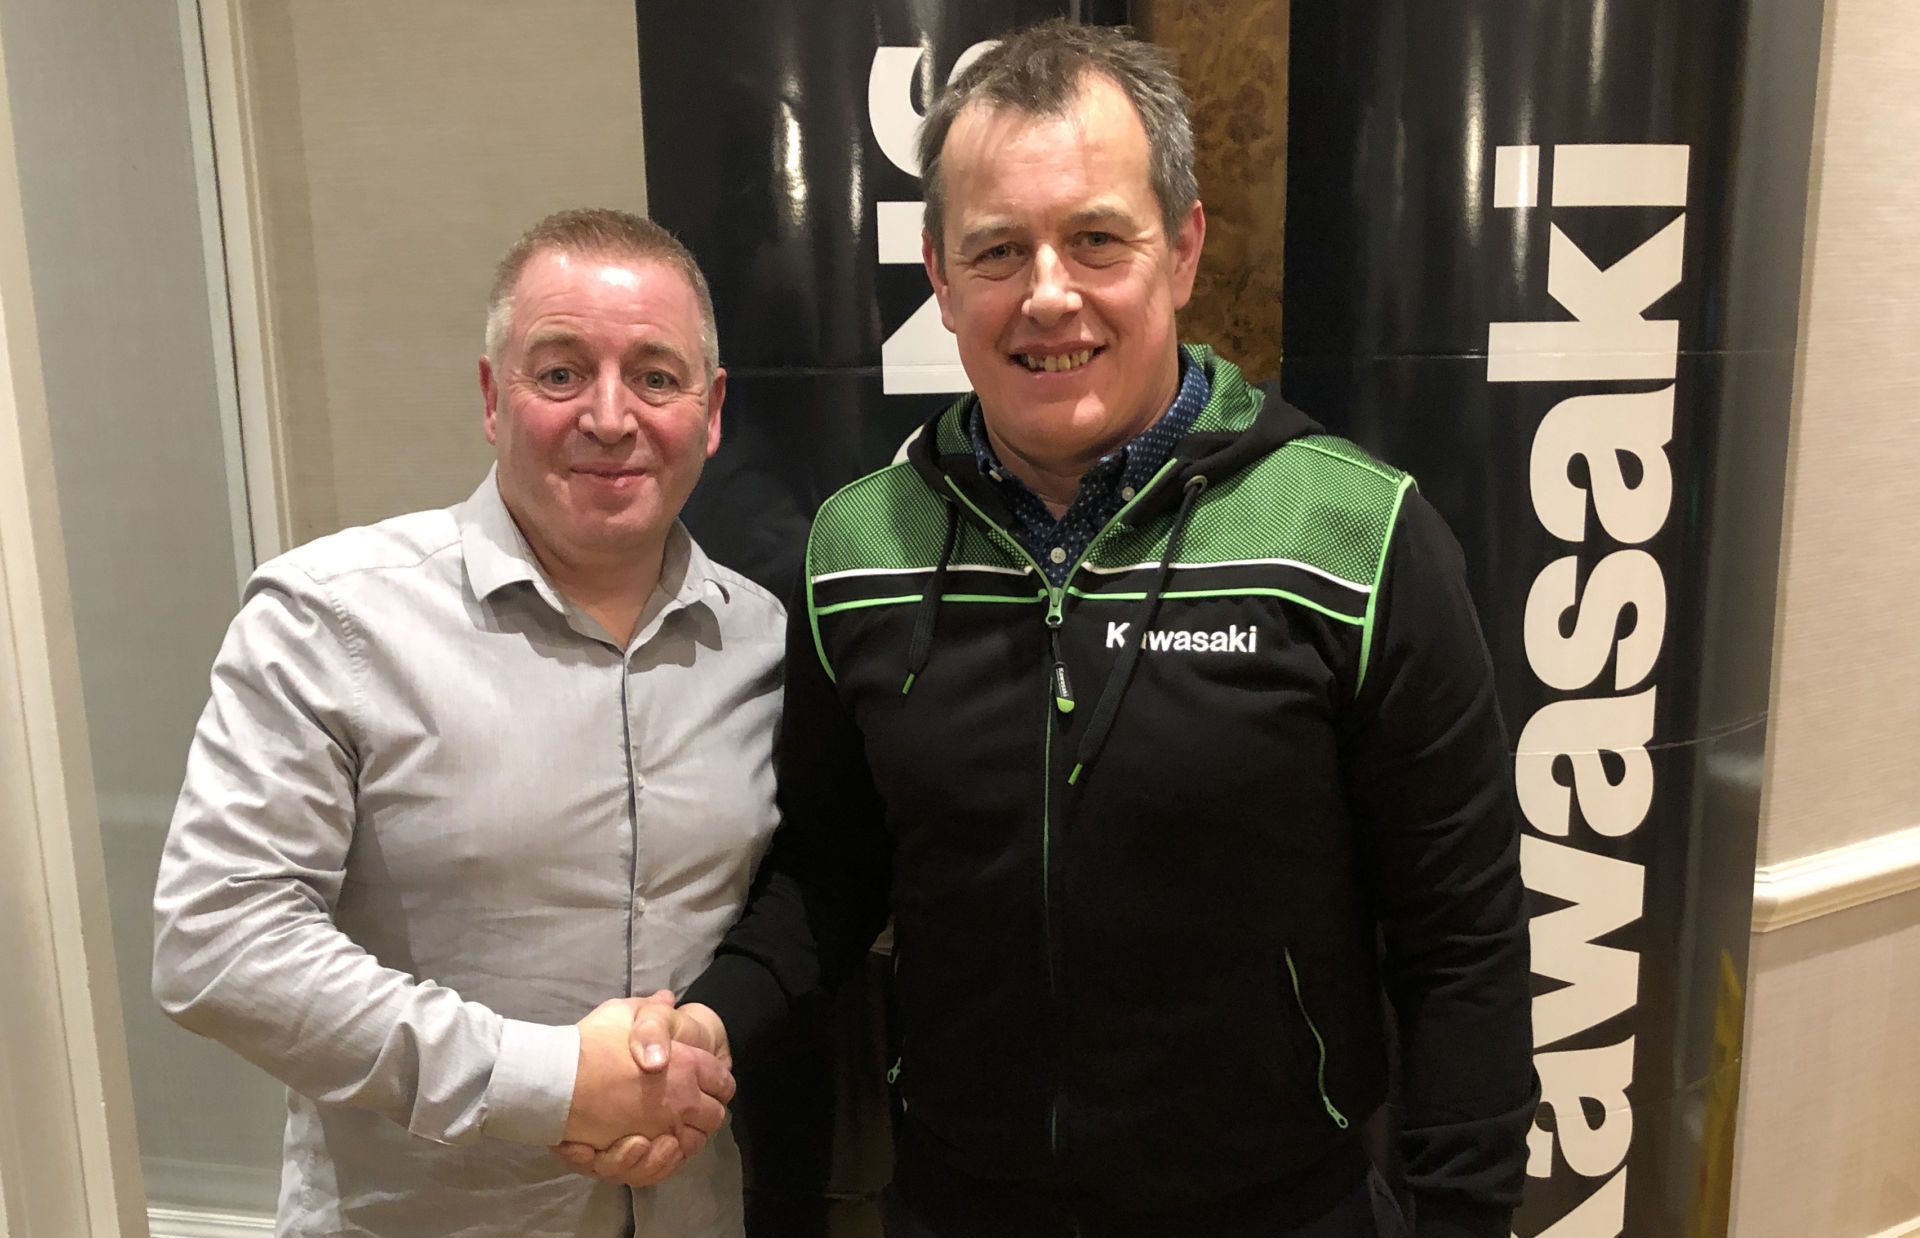 Quattro Plant Bournemouth Kawasaki Team Owner Pete Extance (left) and John McGuinness (right). Photo courtesy of Kawasaki Motors UK.